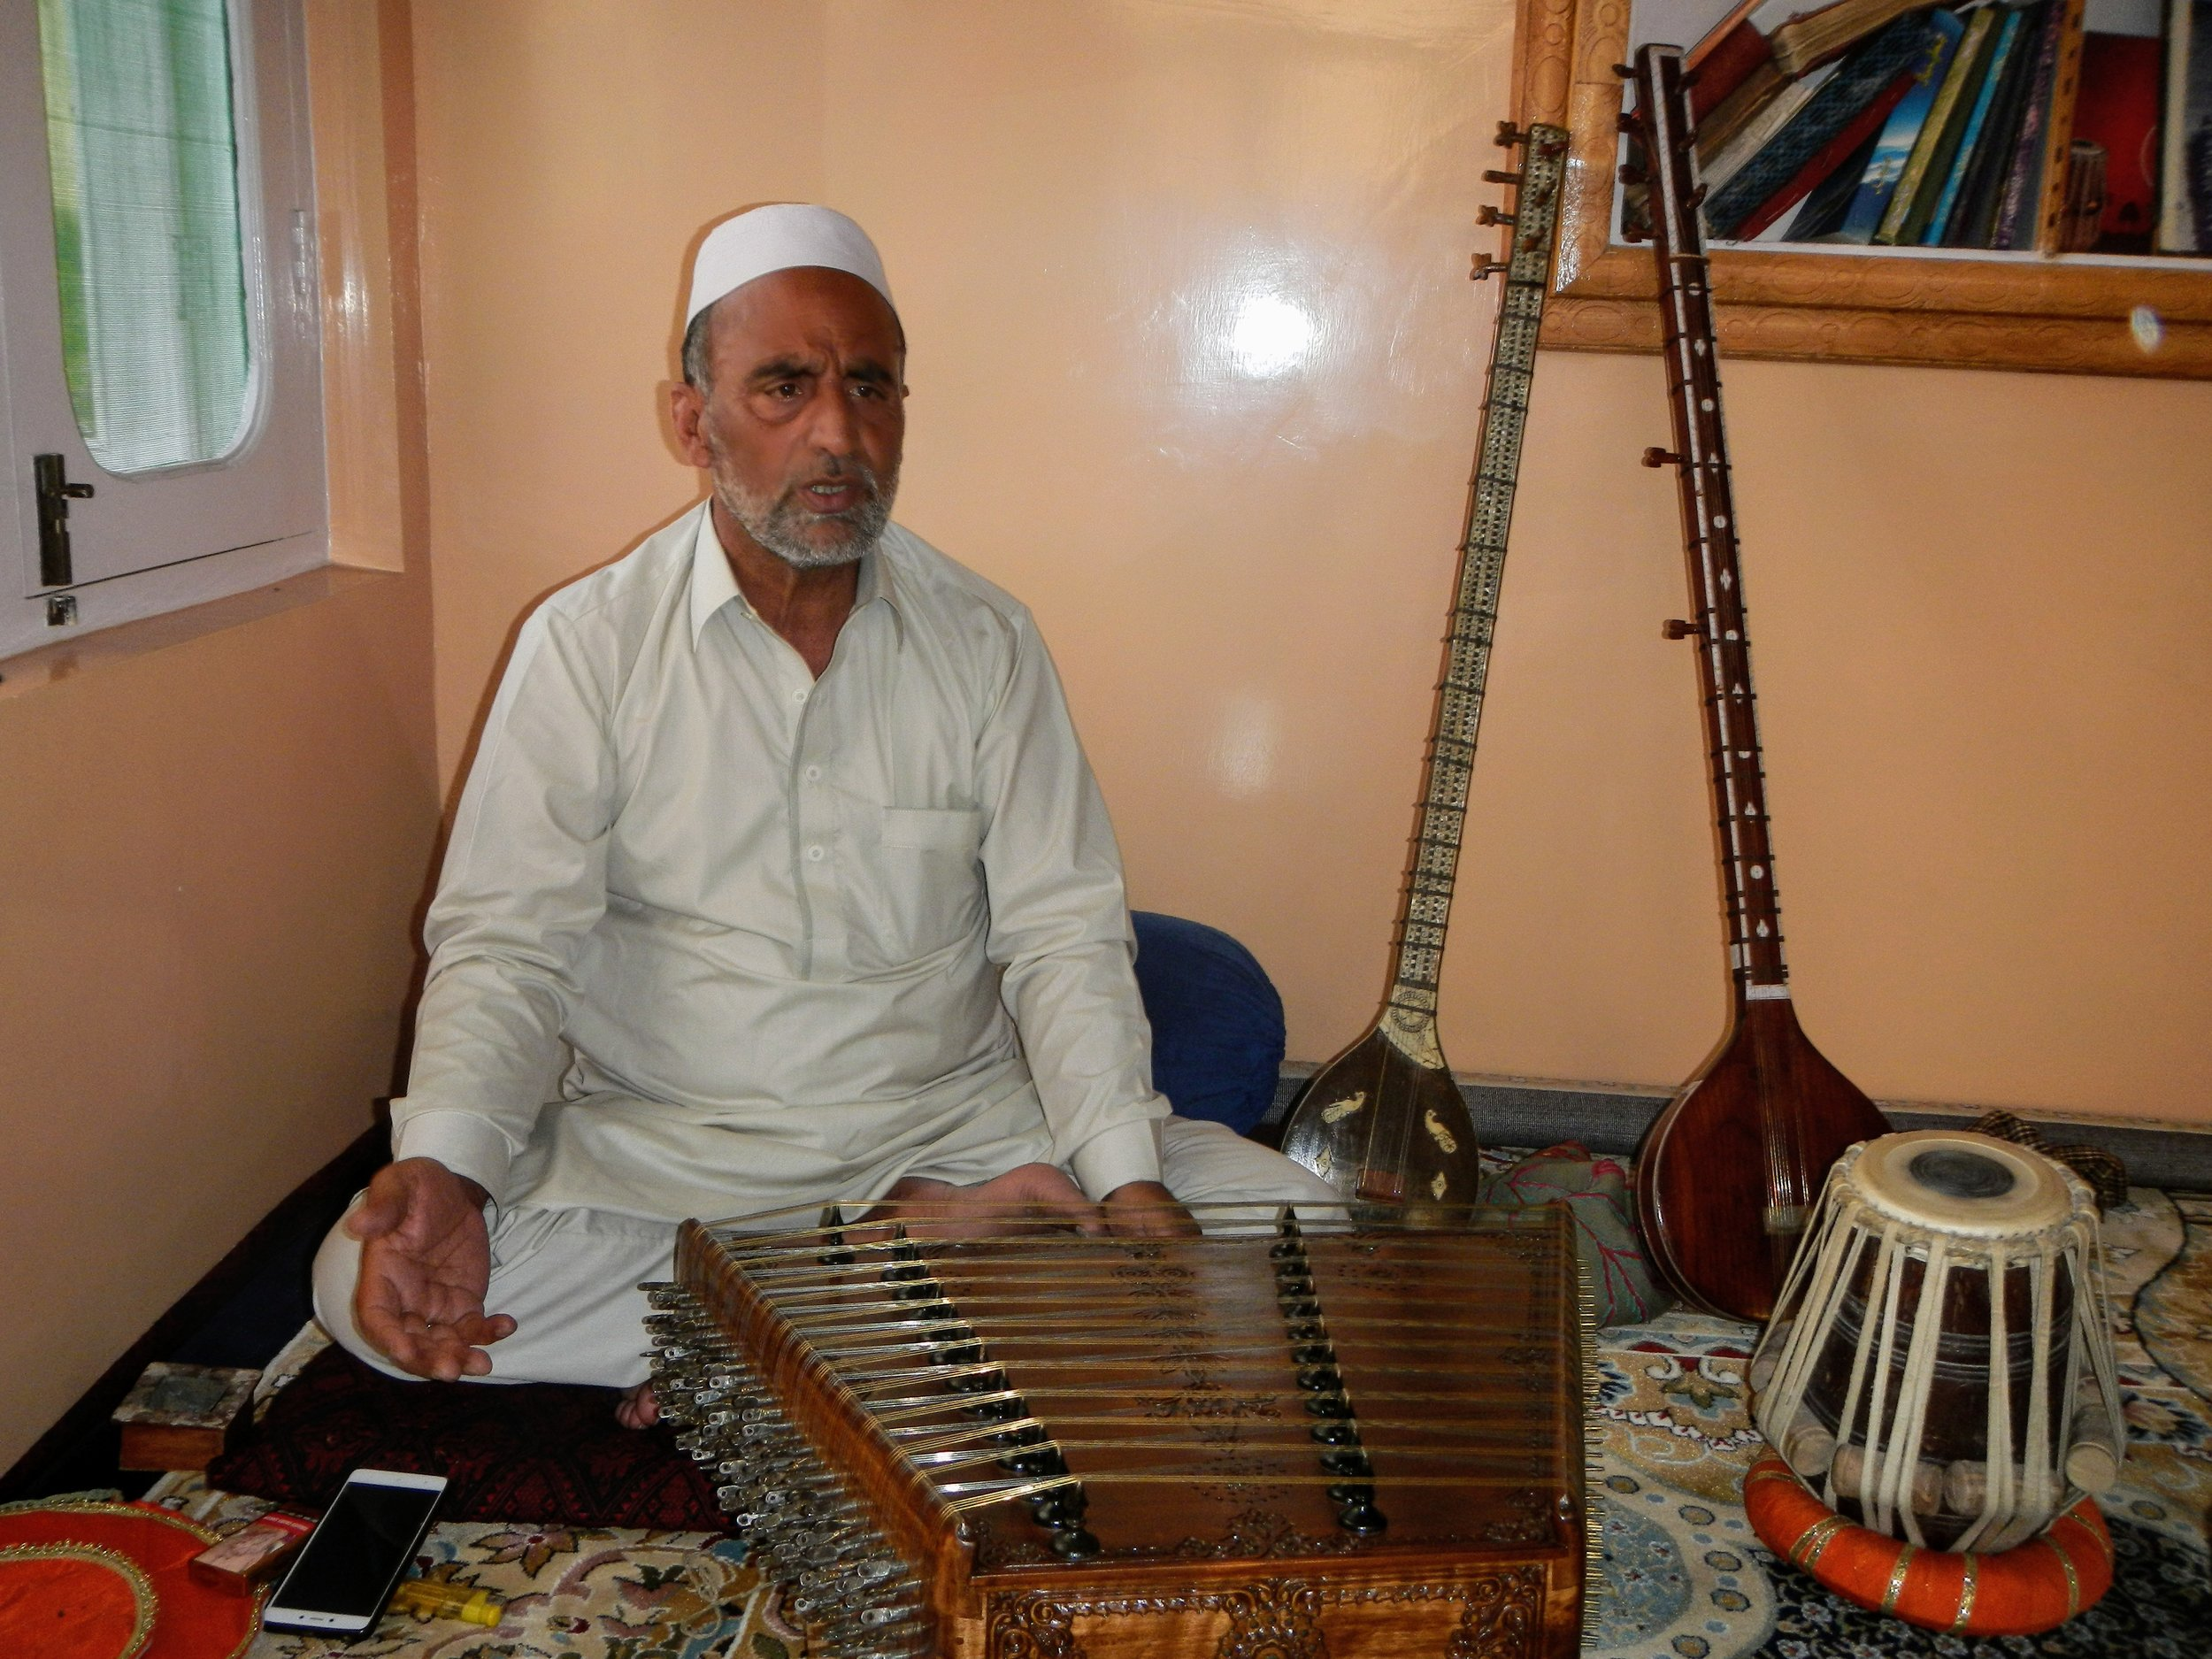 Kashmiri classical music maestro Ustad Mohammad Yaqoob Sheikh sits in front of his Saaz-e-Kashmir, a traditional instrument used in Sufiana ensembles in Srinagar, India. Photo by Priyadarshini Sen.